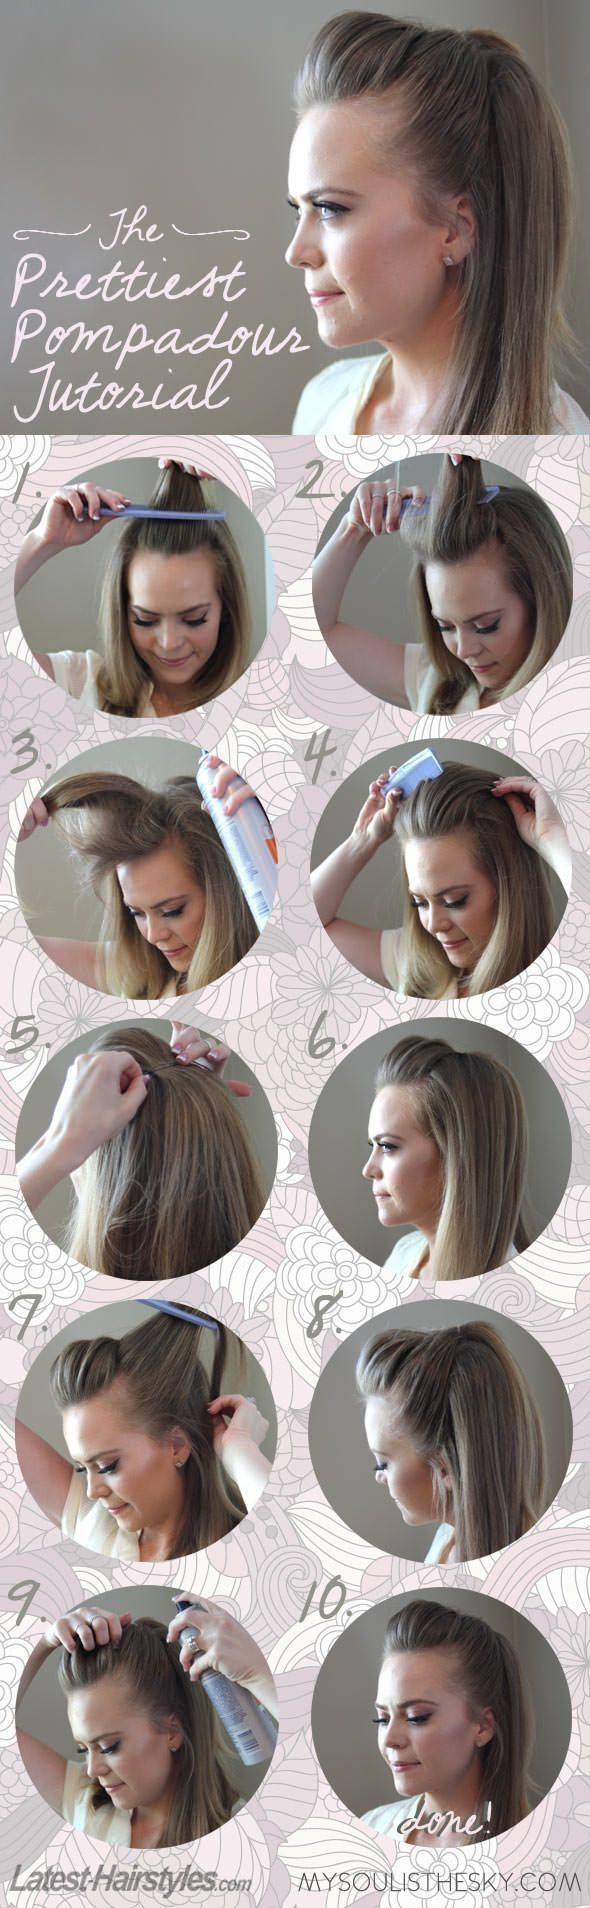 the easiest prettiest pompadour